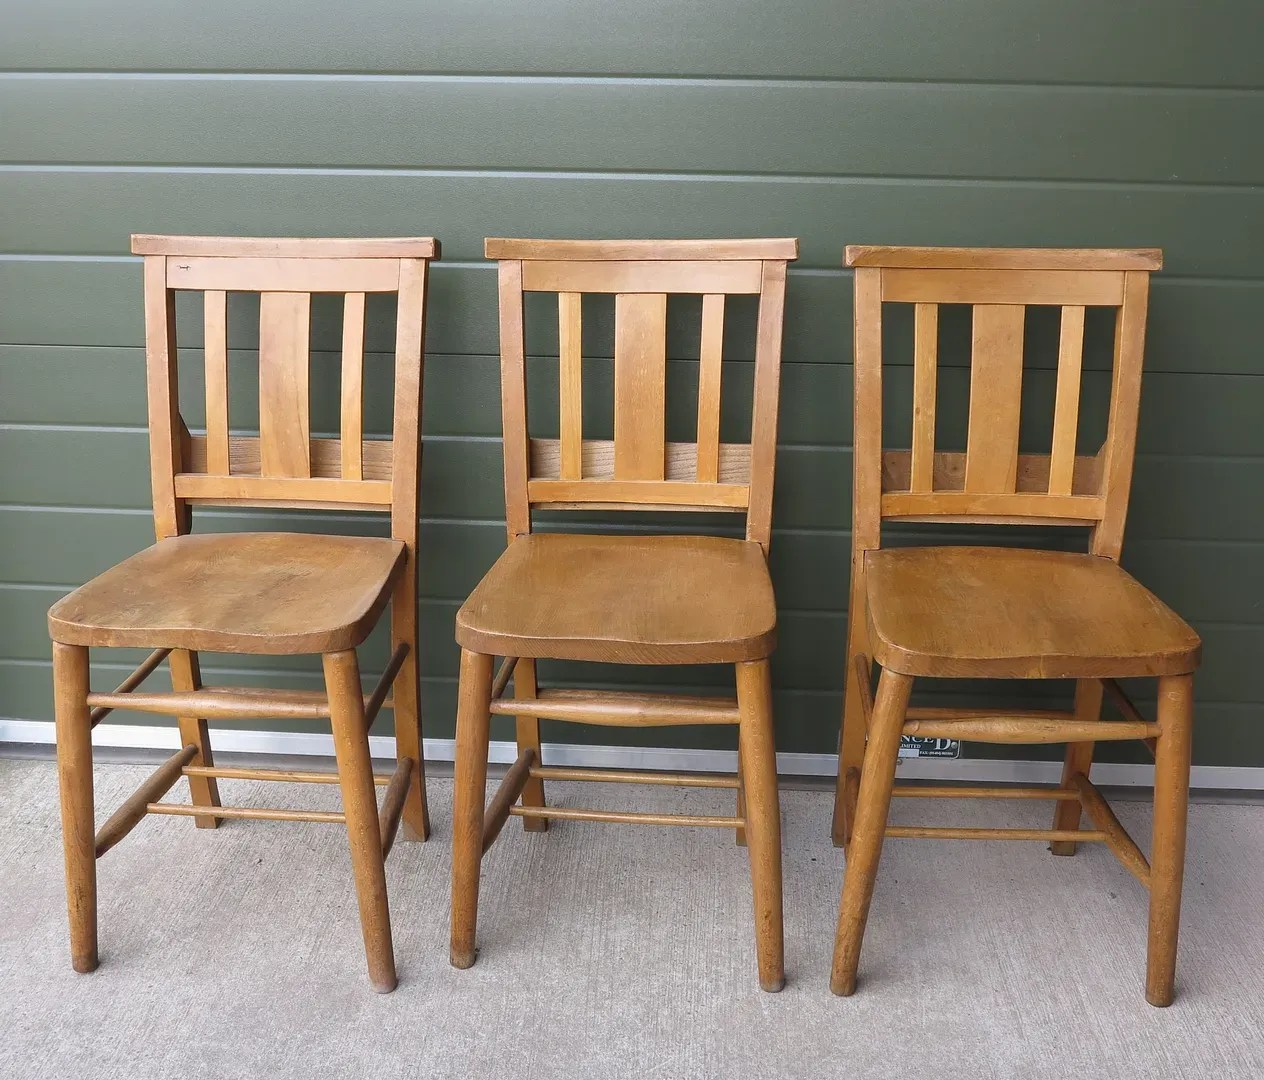 Antique Wooden Church Chairs with Bible Backs